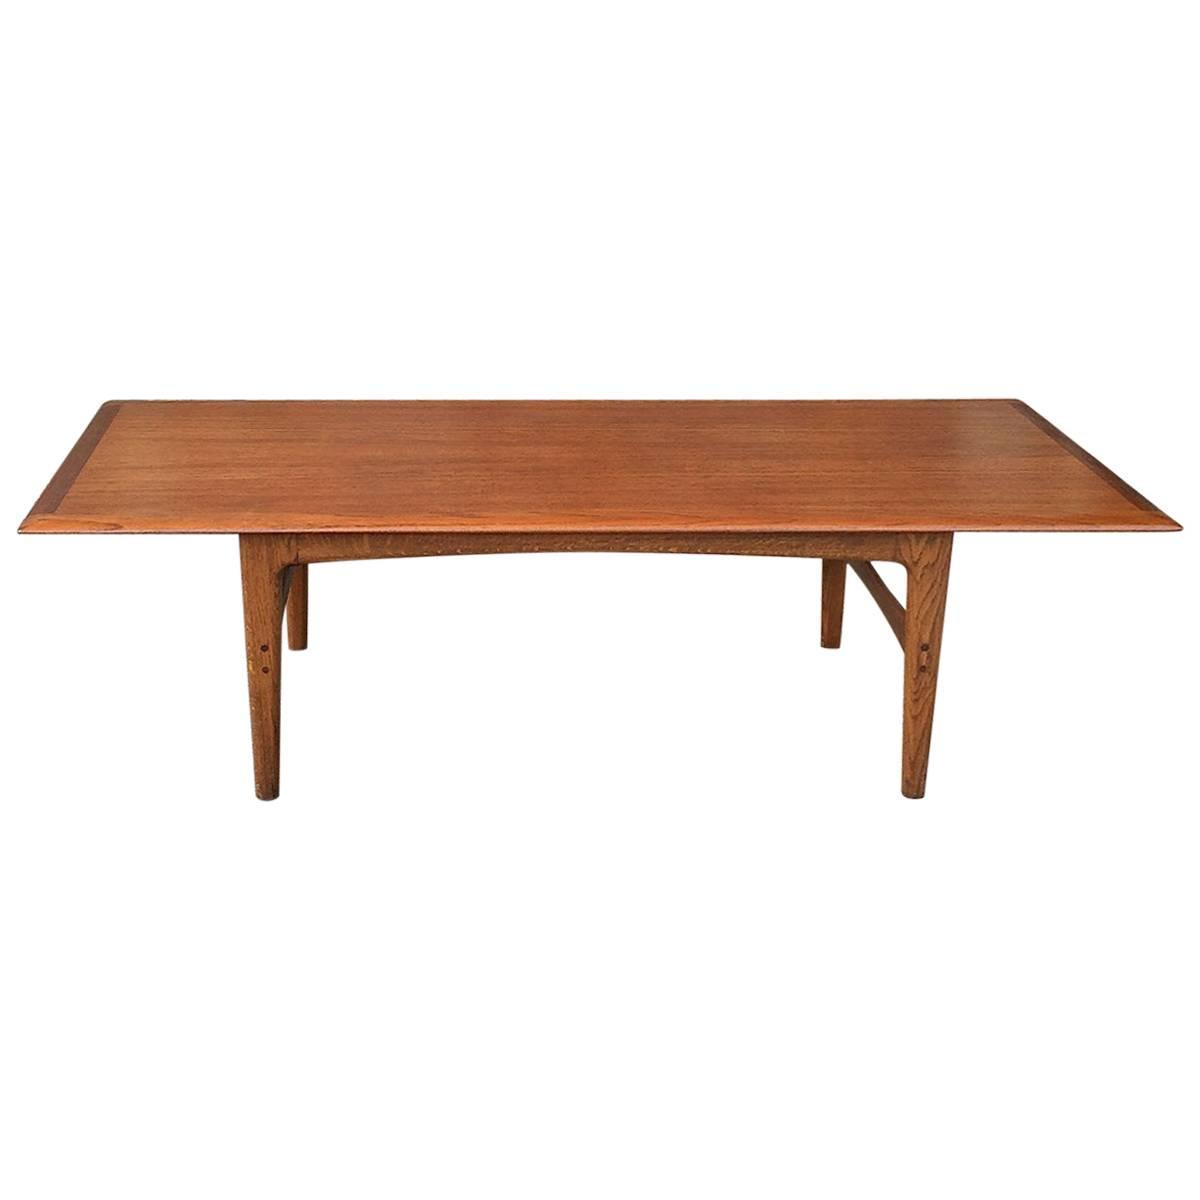 Danish modern hans wegner teak coffee table for sale at for Danish modern coffee table